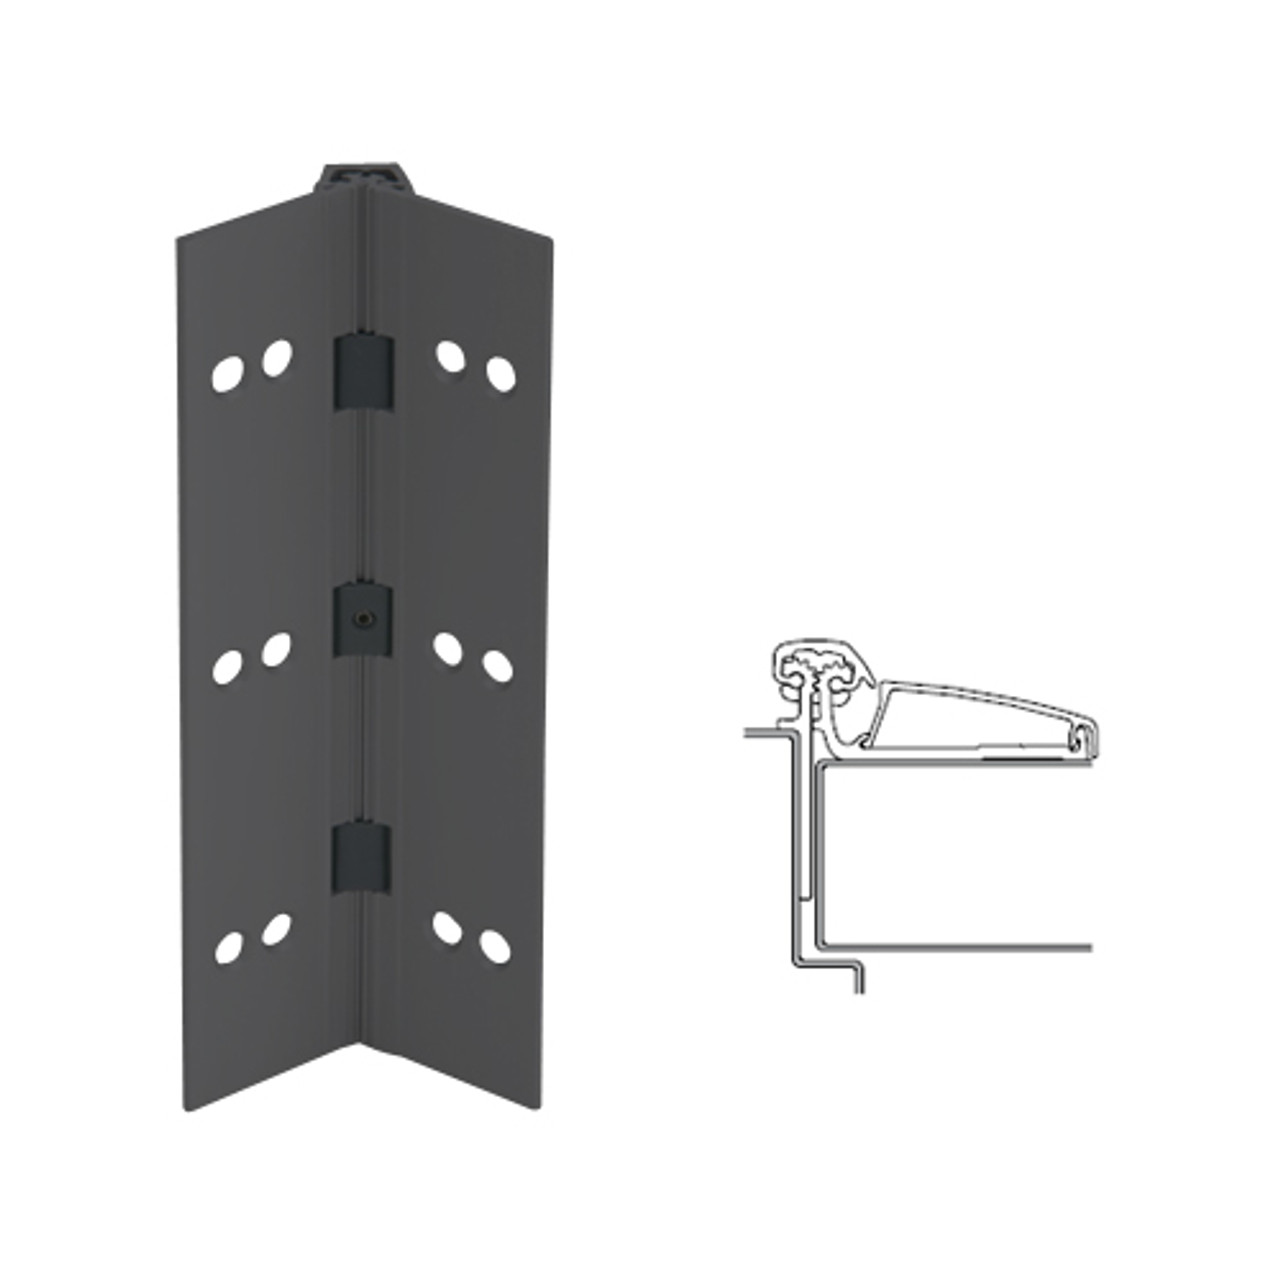 045XY-315AN-83-SECWDHM IVES Adjustable Half Surface Continuous Geared Hinges with Security Screws - Hex Pin Drive in Anodized Black